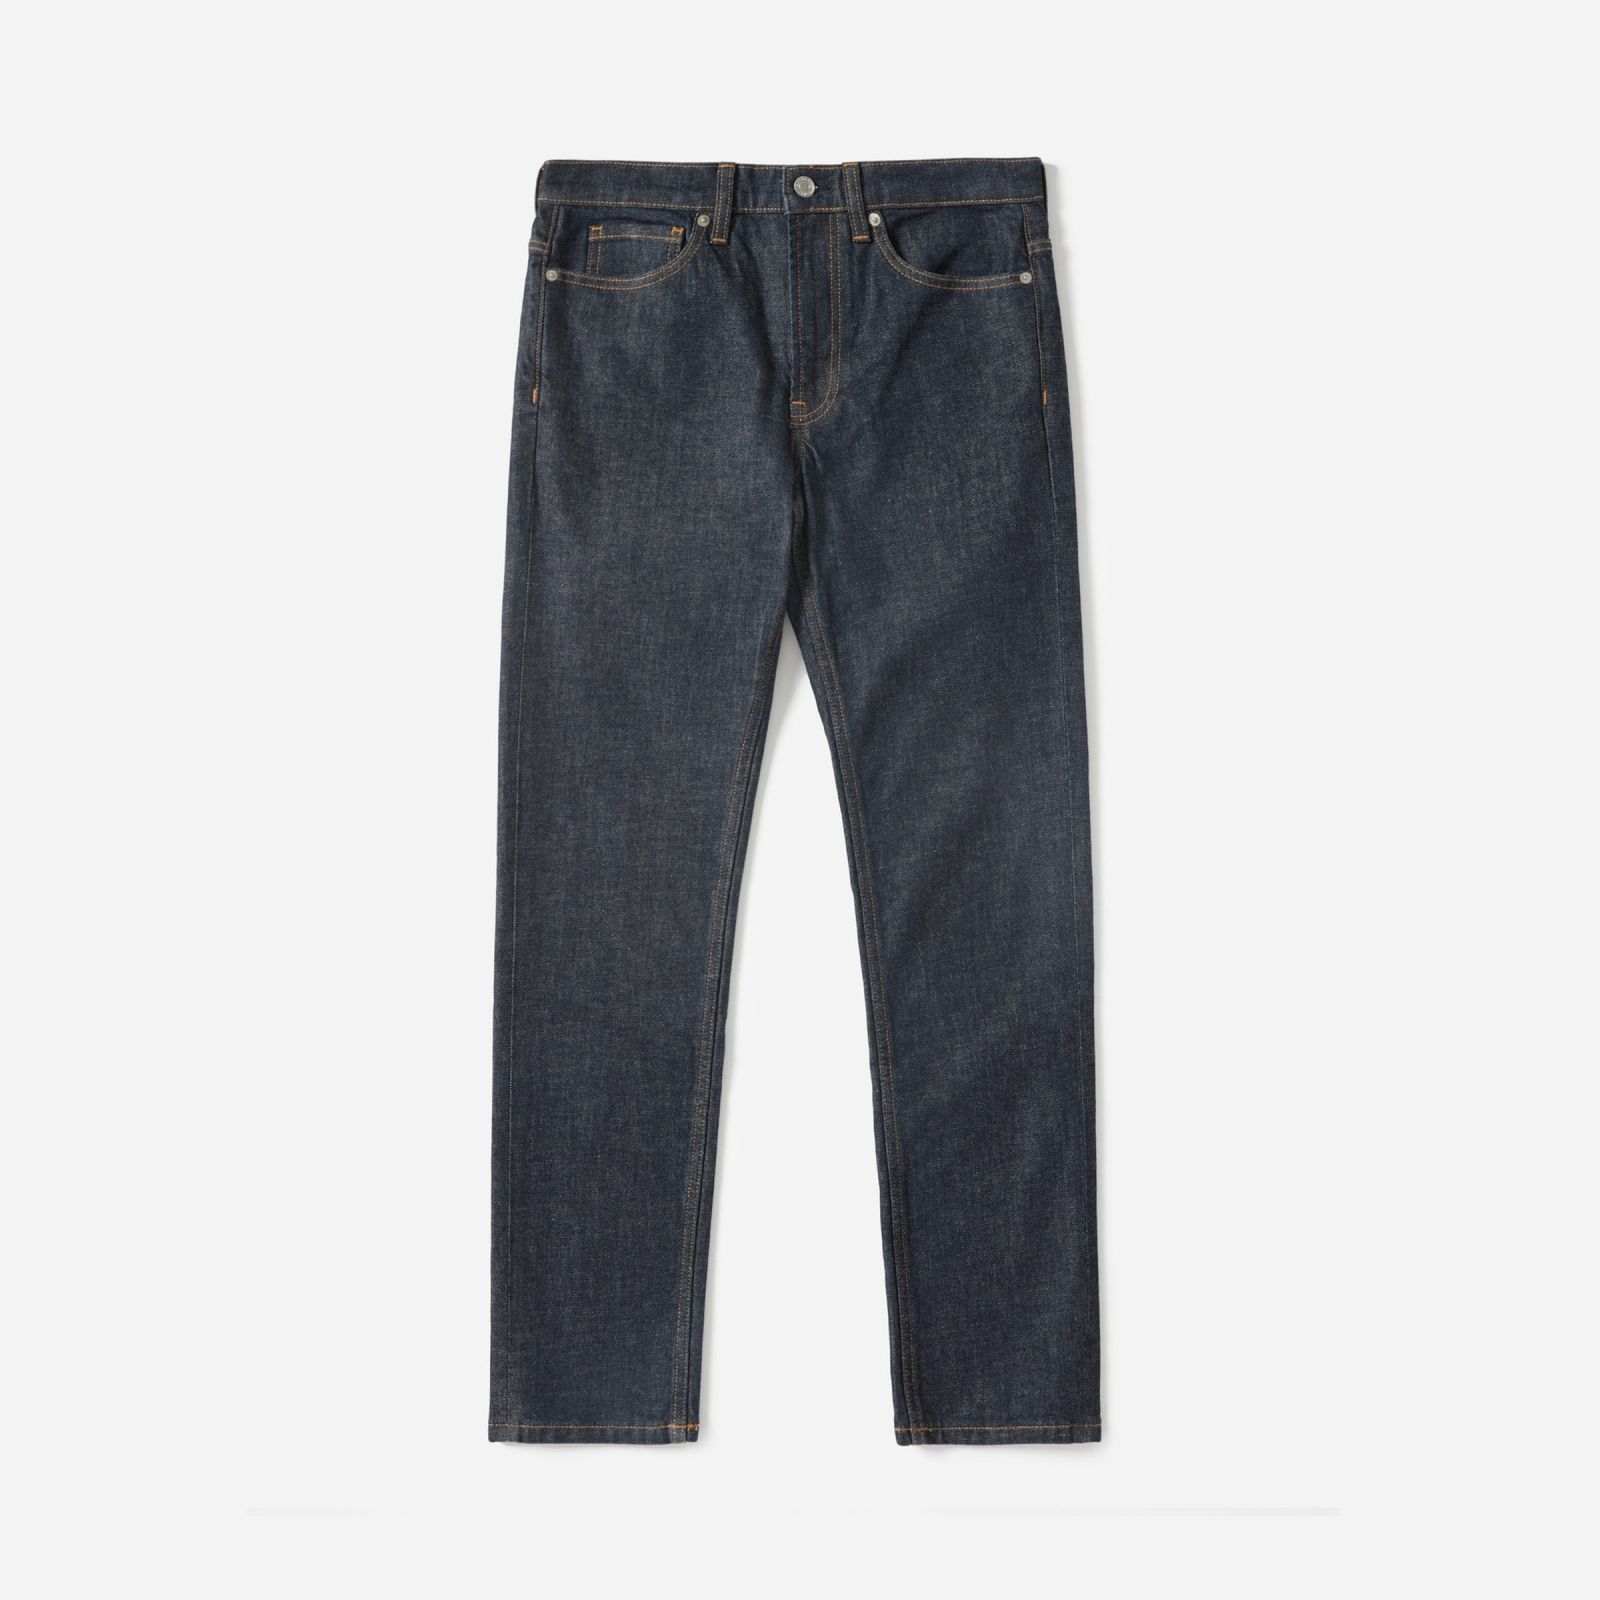 Men's Slim Fit Jean